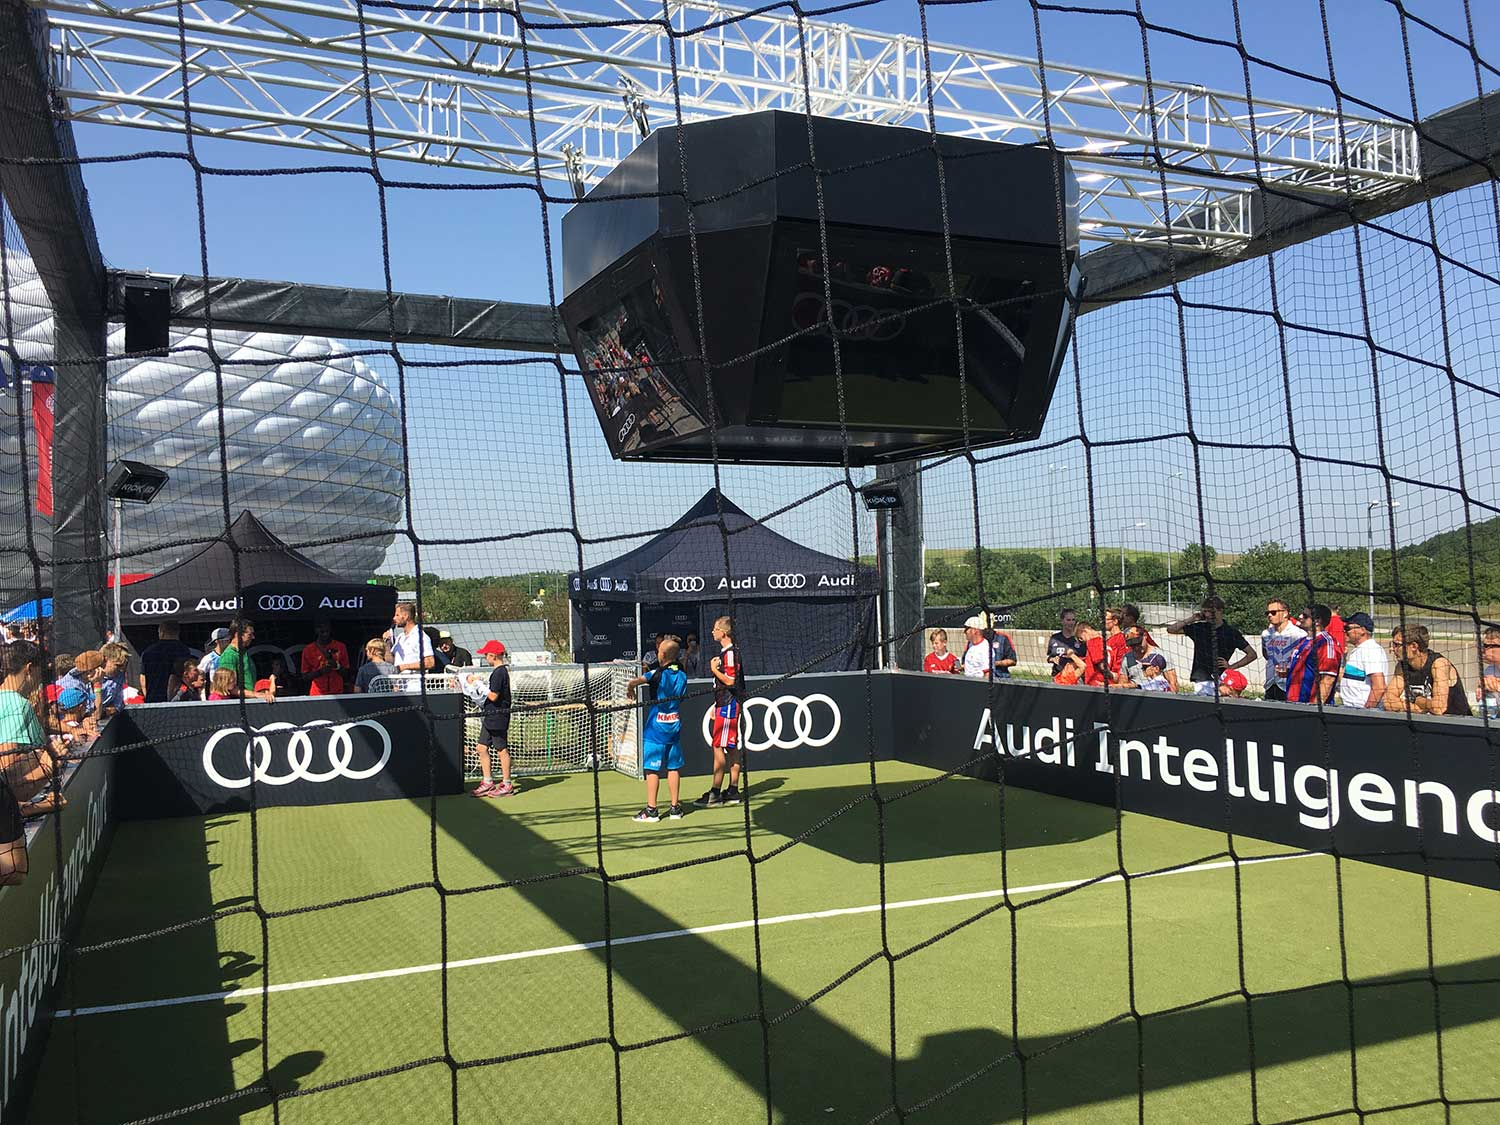 Audi Intelligence Court